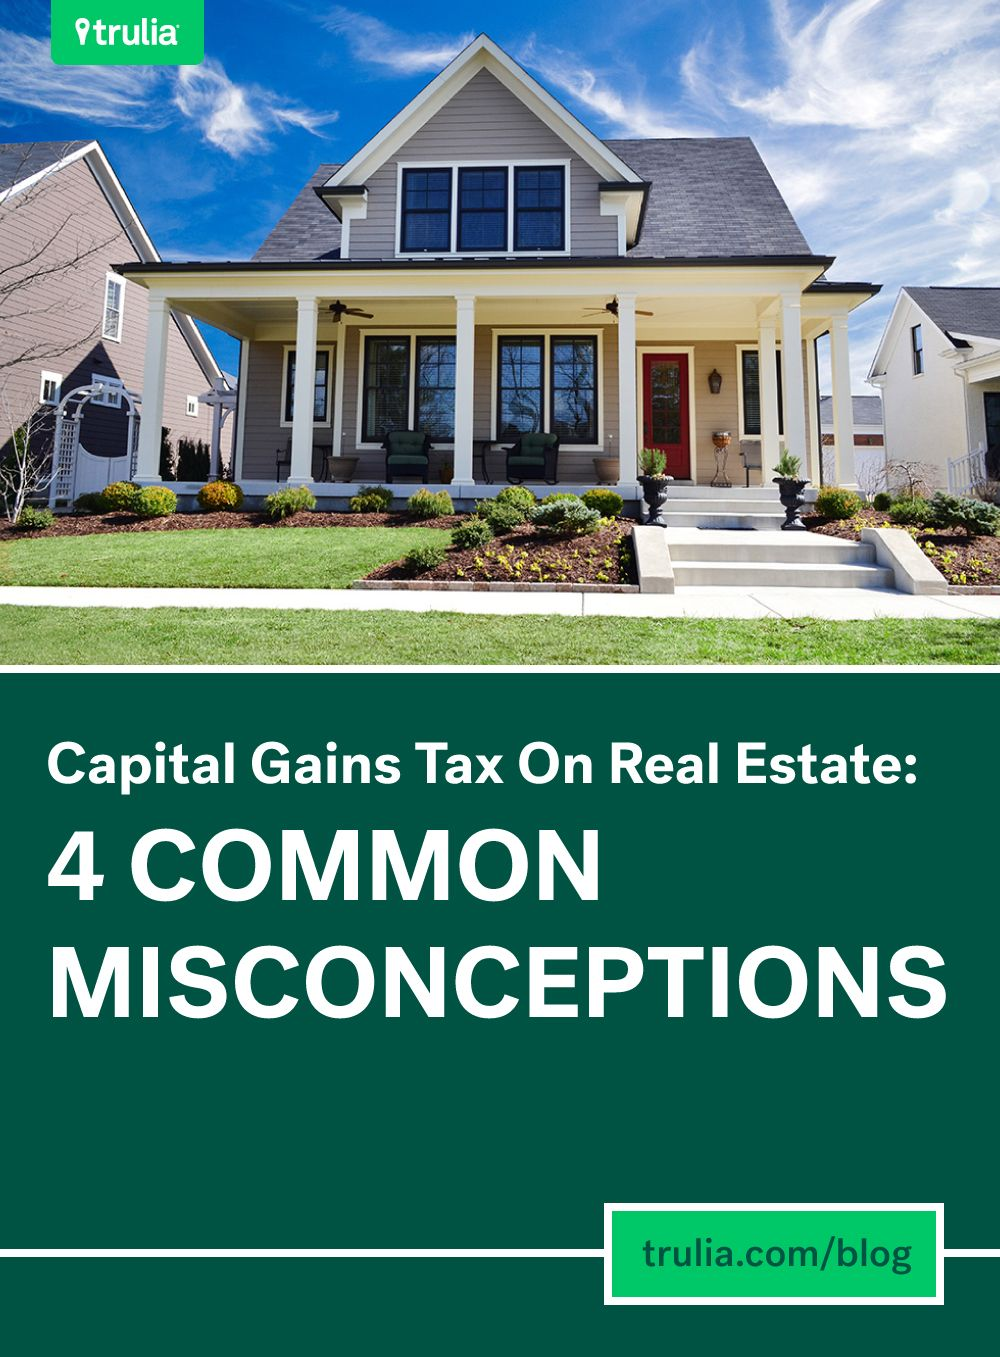 Capital Gains Tax On Real Estate 4 Common Misconceptions Money Matters Trulia Blog Capital Gains Tax Capital Gain Real Estate Courses